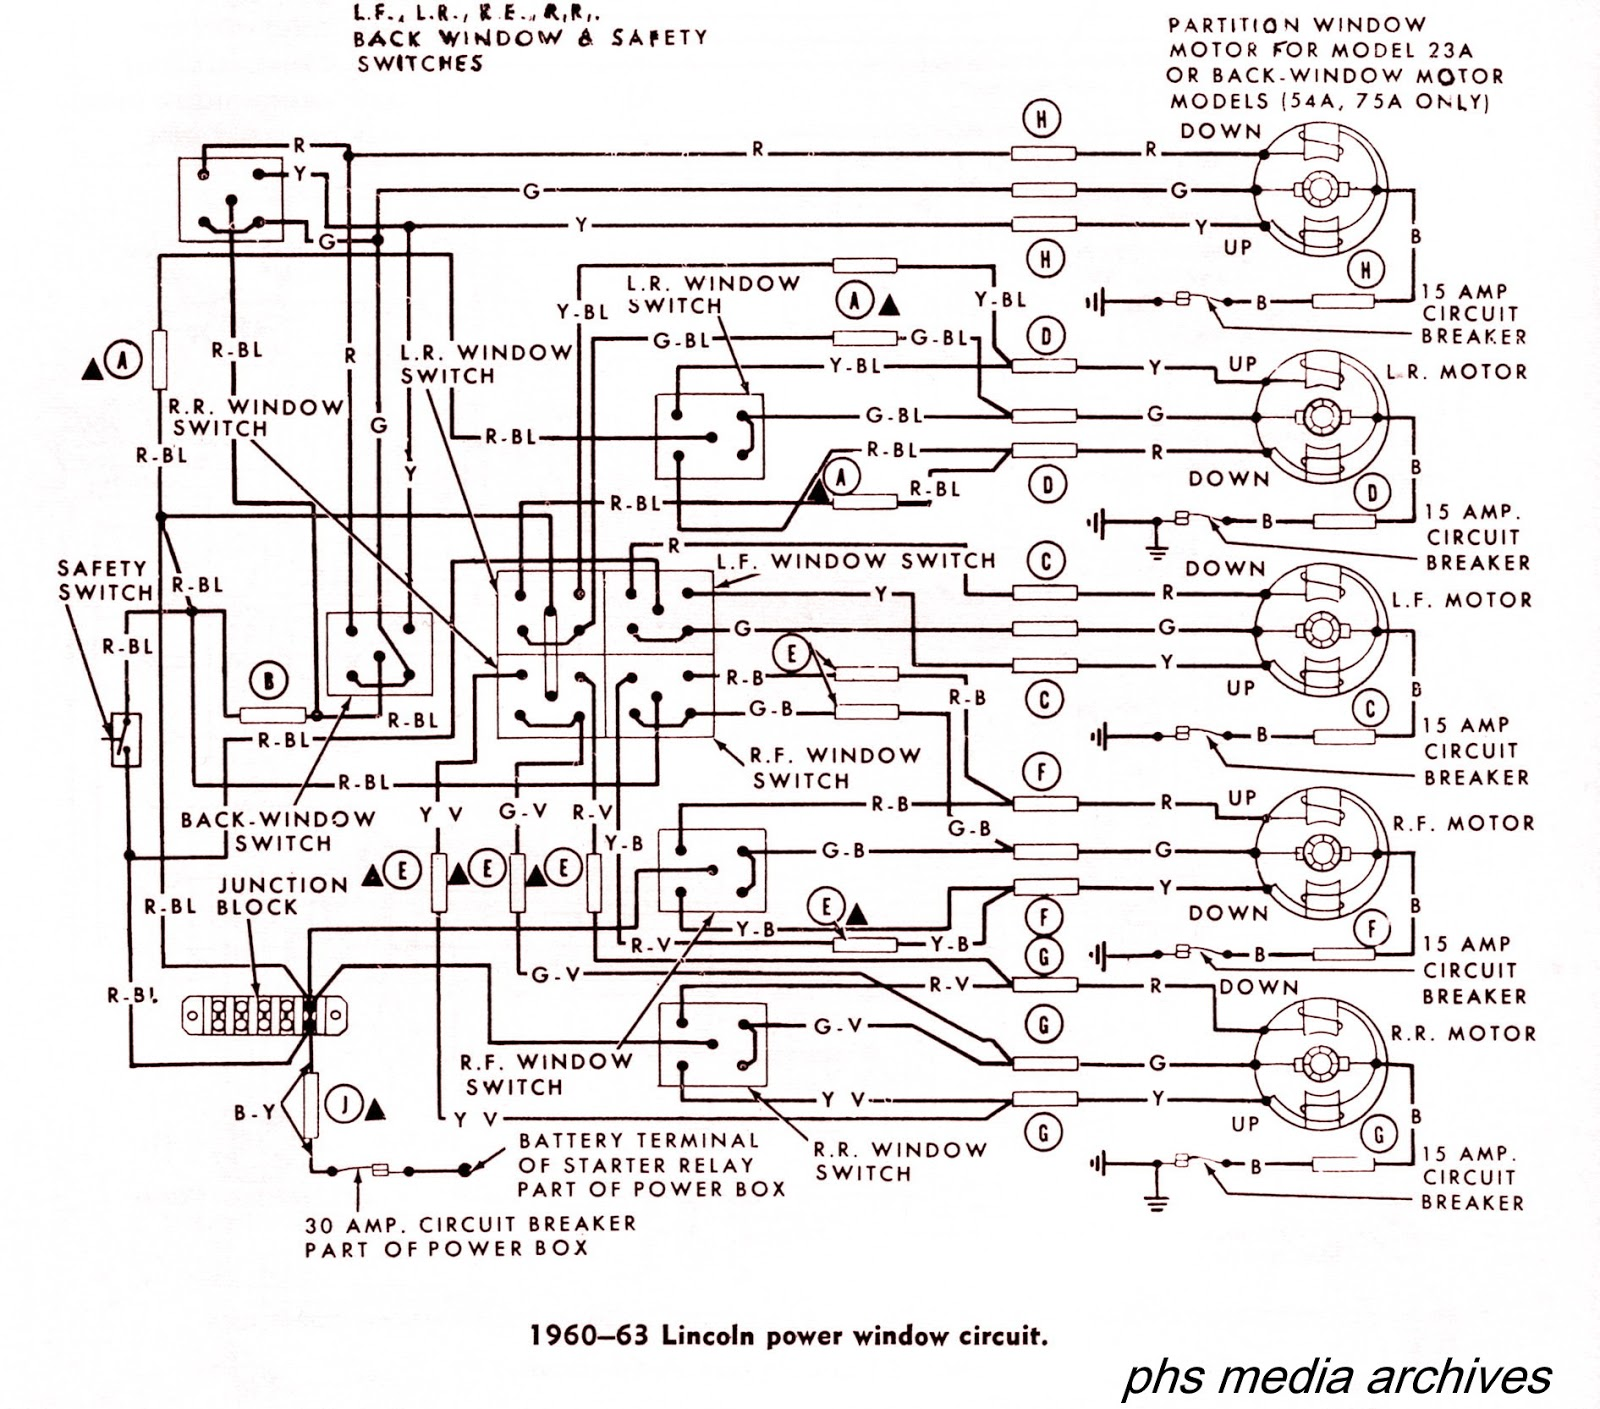 Lincoln Wiring Diagrams Detailed Schematic 1969 Gt6 Diagram Tech Series 1960 1964 Phscollectorcarworld 2000 Continental Problems